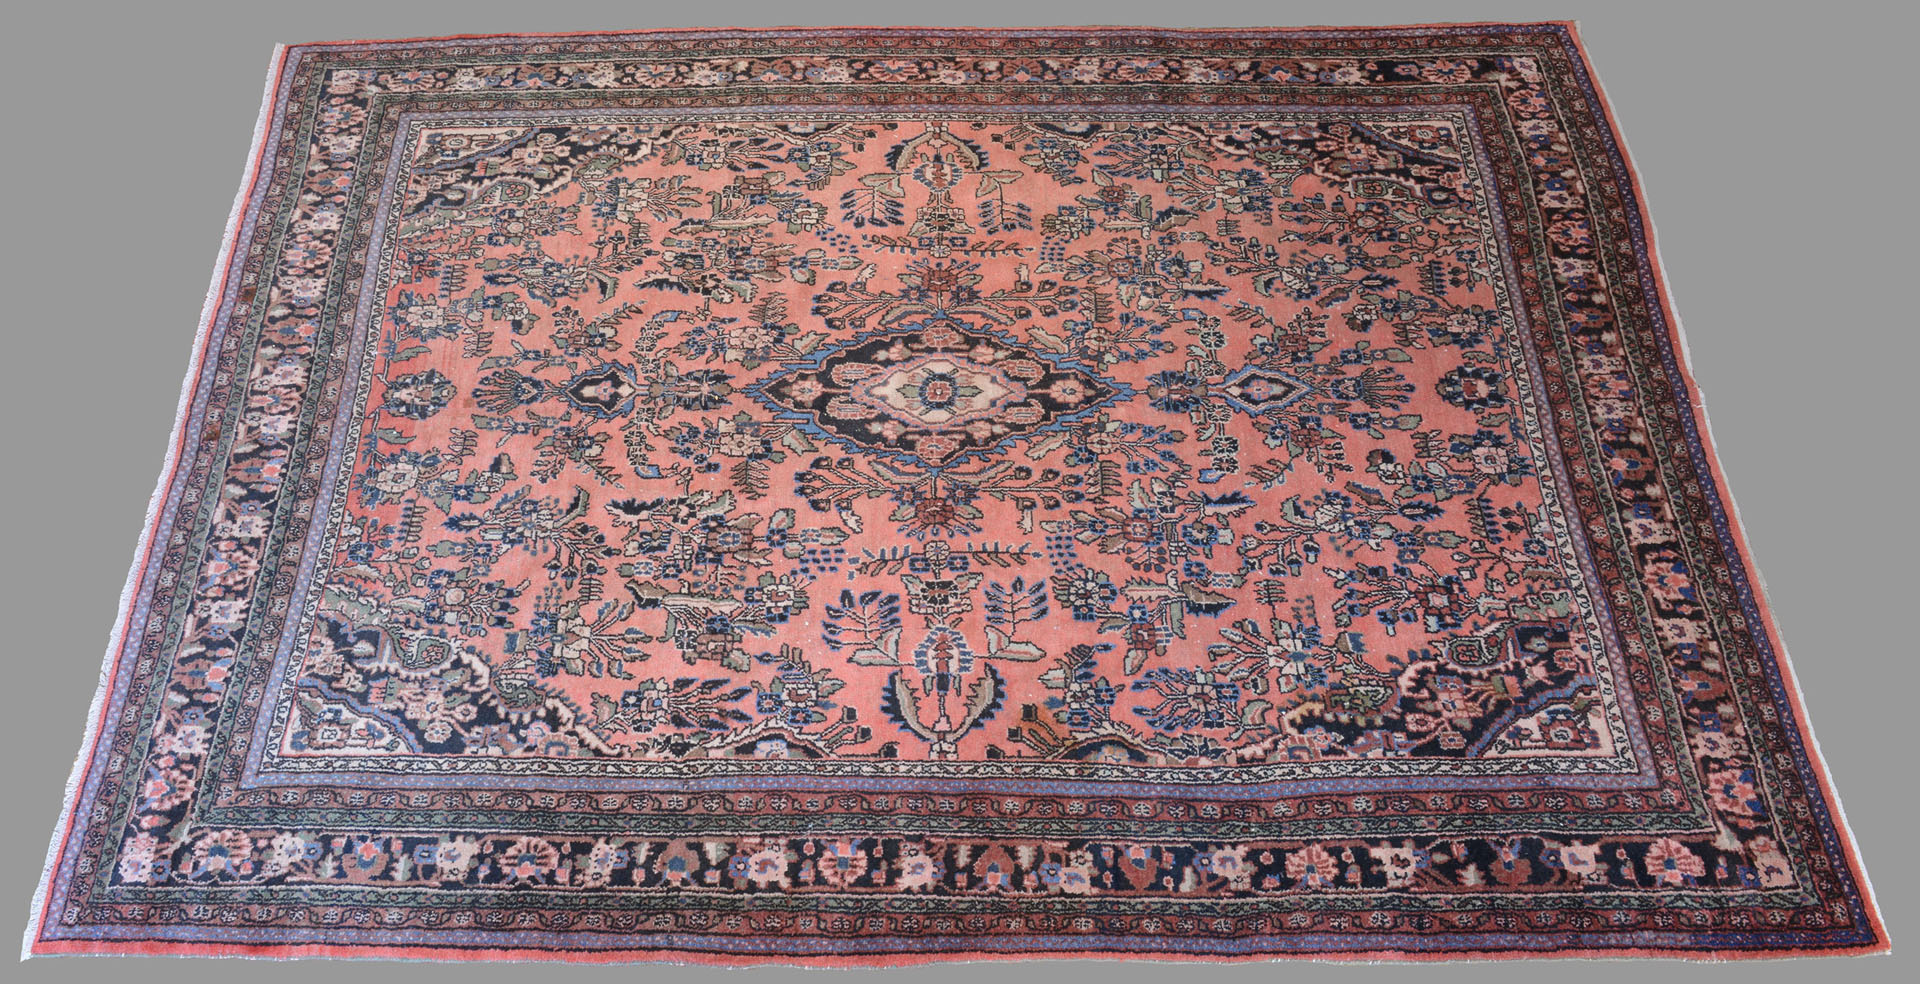 Semi-Antique Persian Arak Carpet